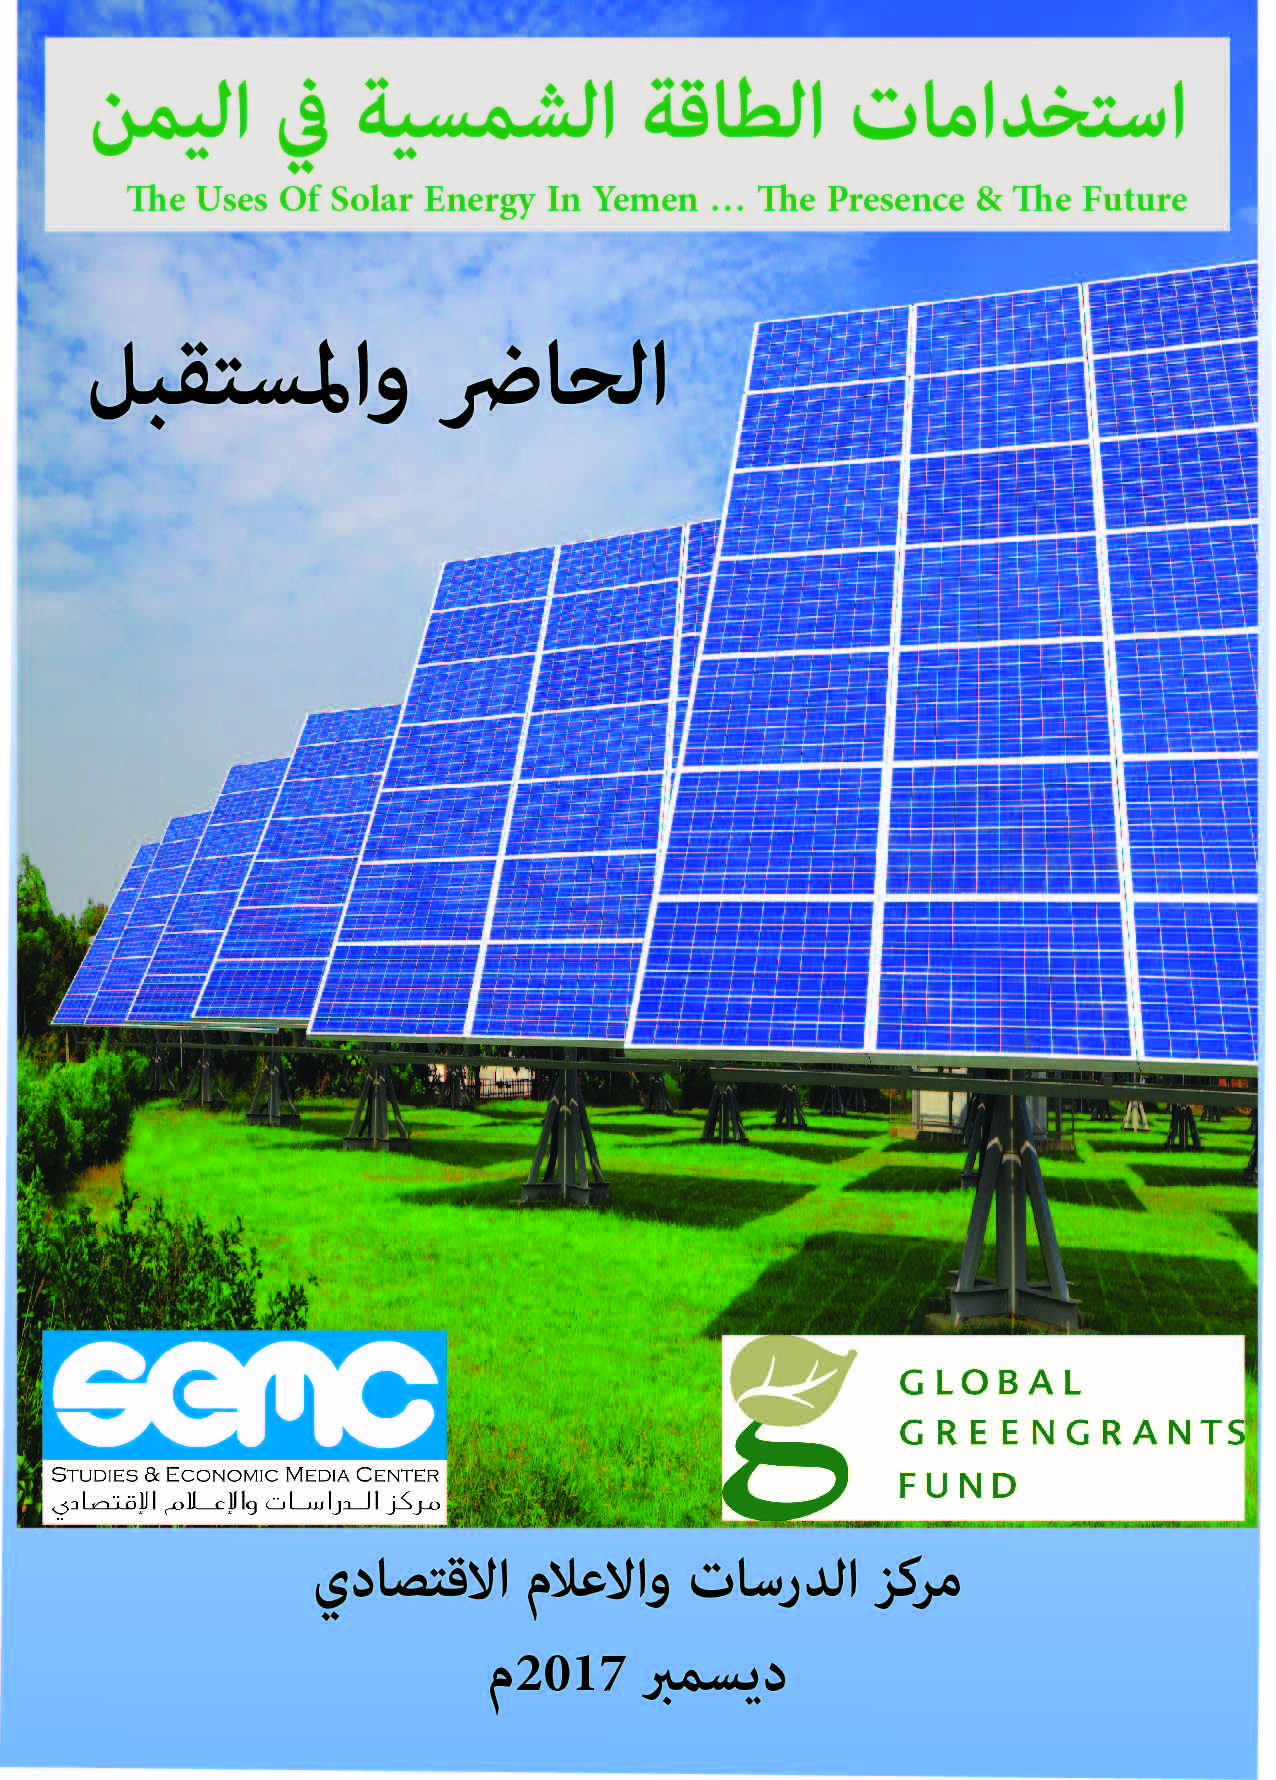 SEMC launched Study on the Use of Solar Energy and its Future in Yemen